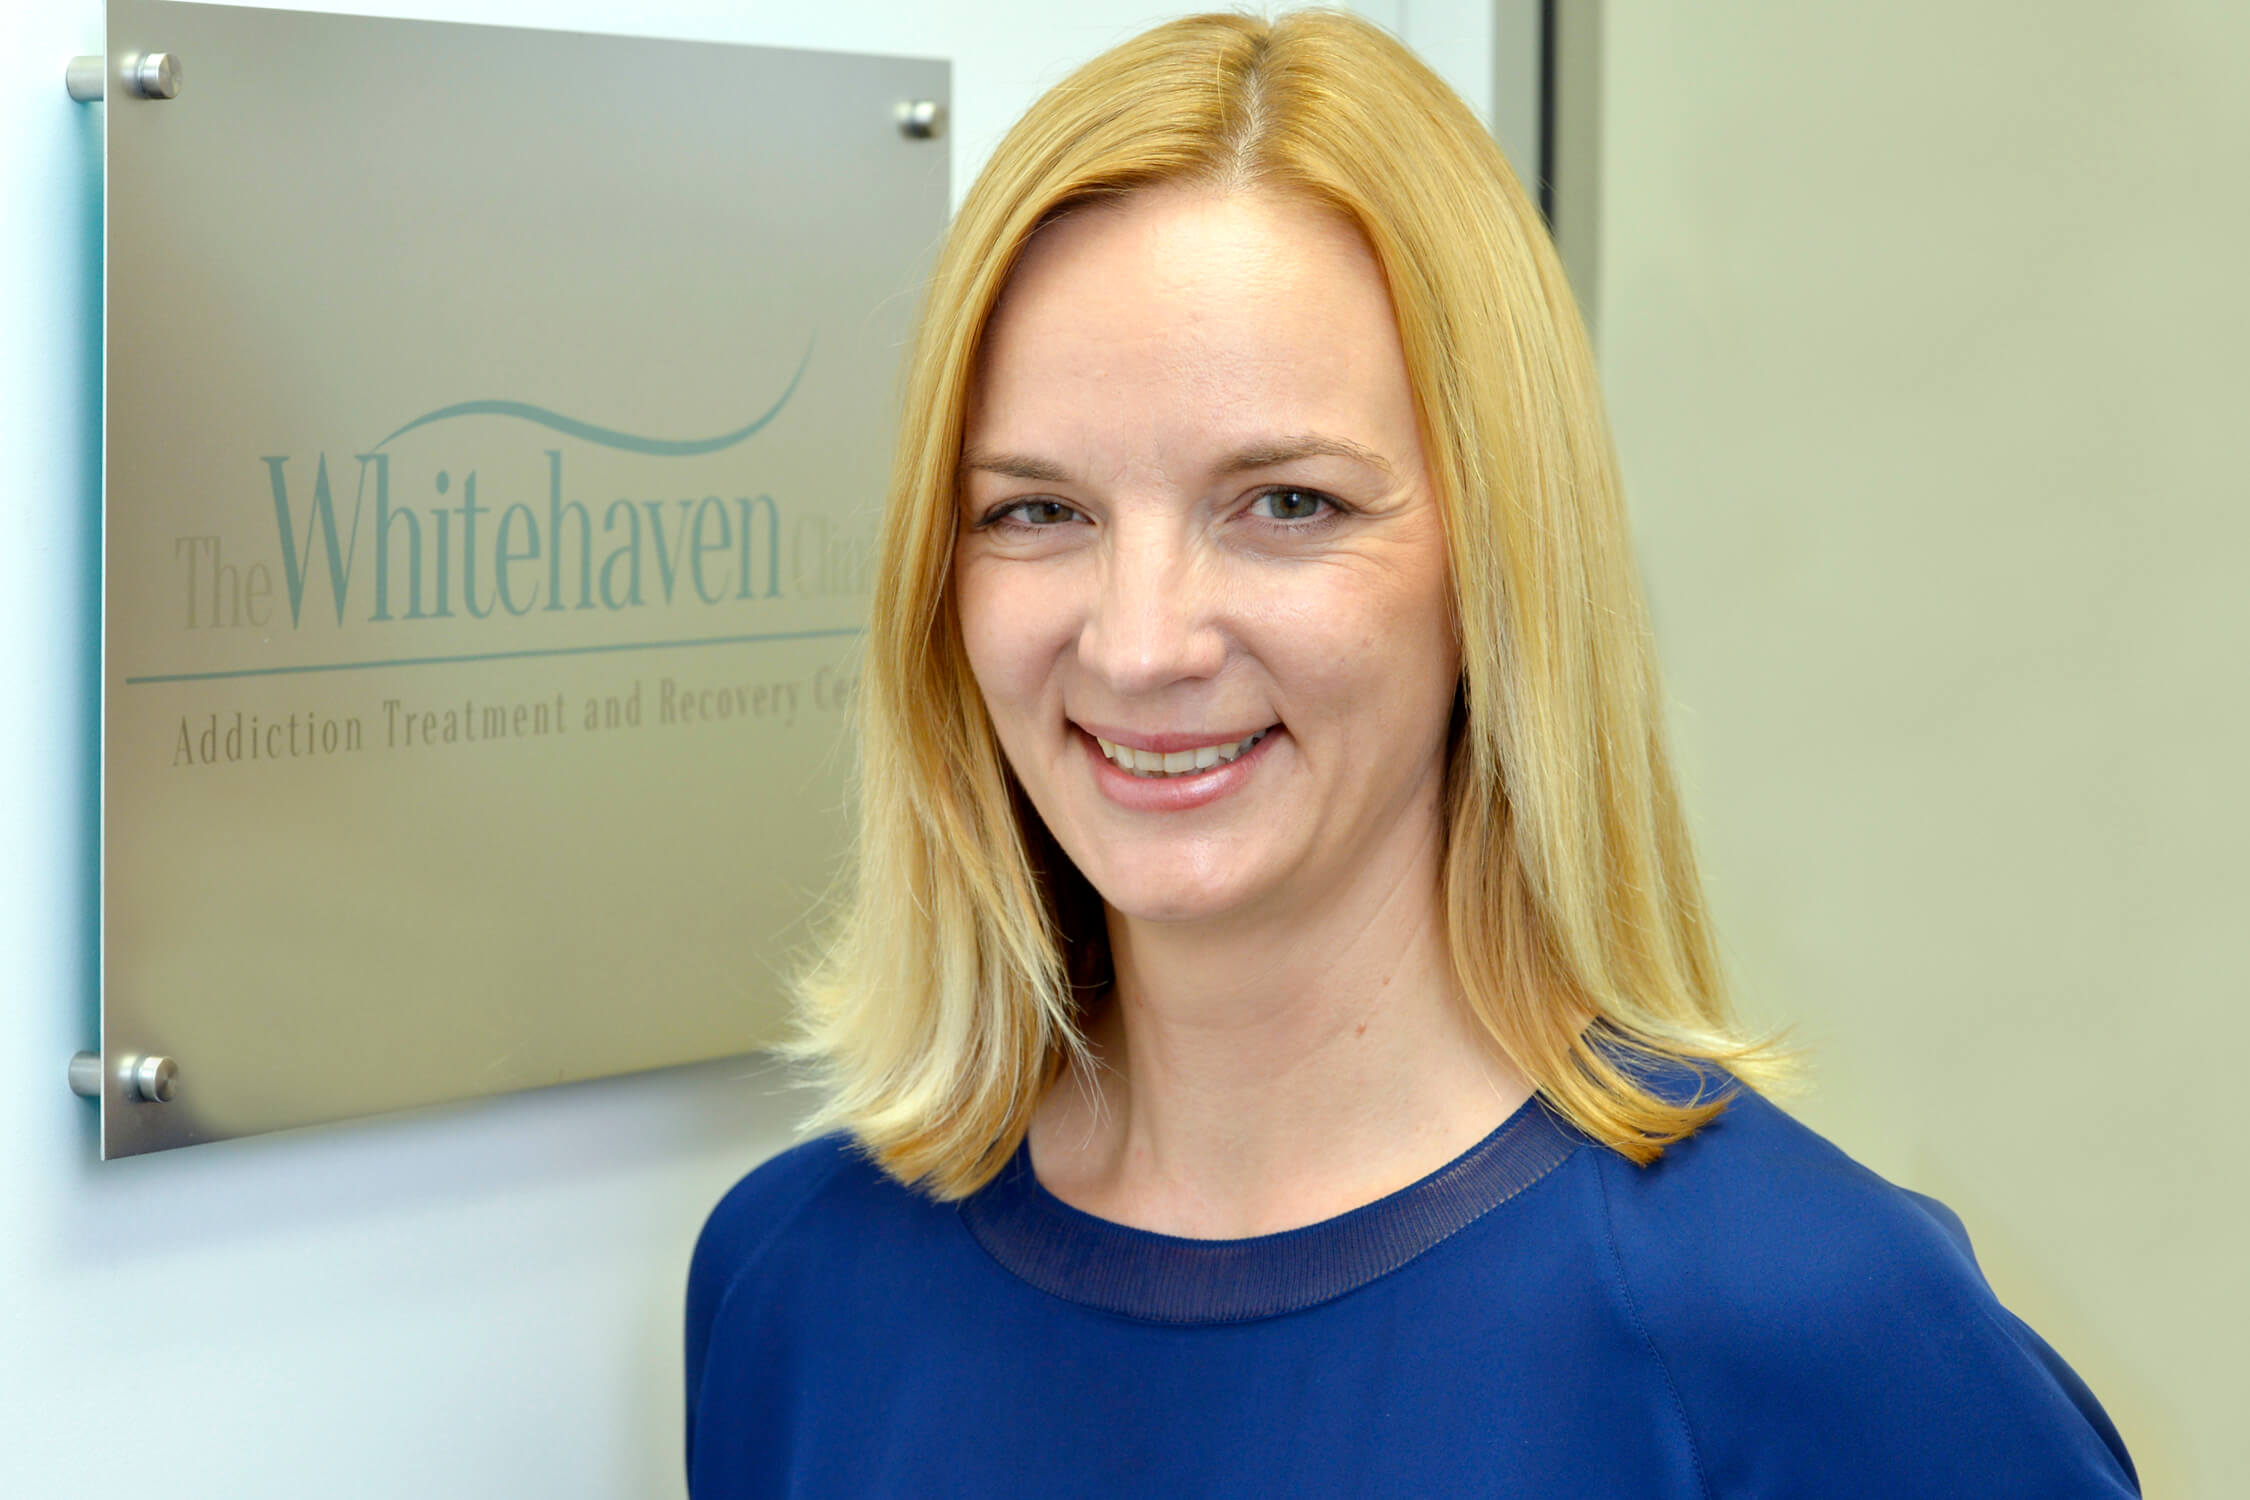 Tabitha Corser, Founder and Director of The Whitehaven Clinic